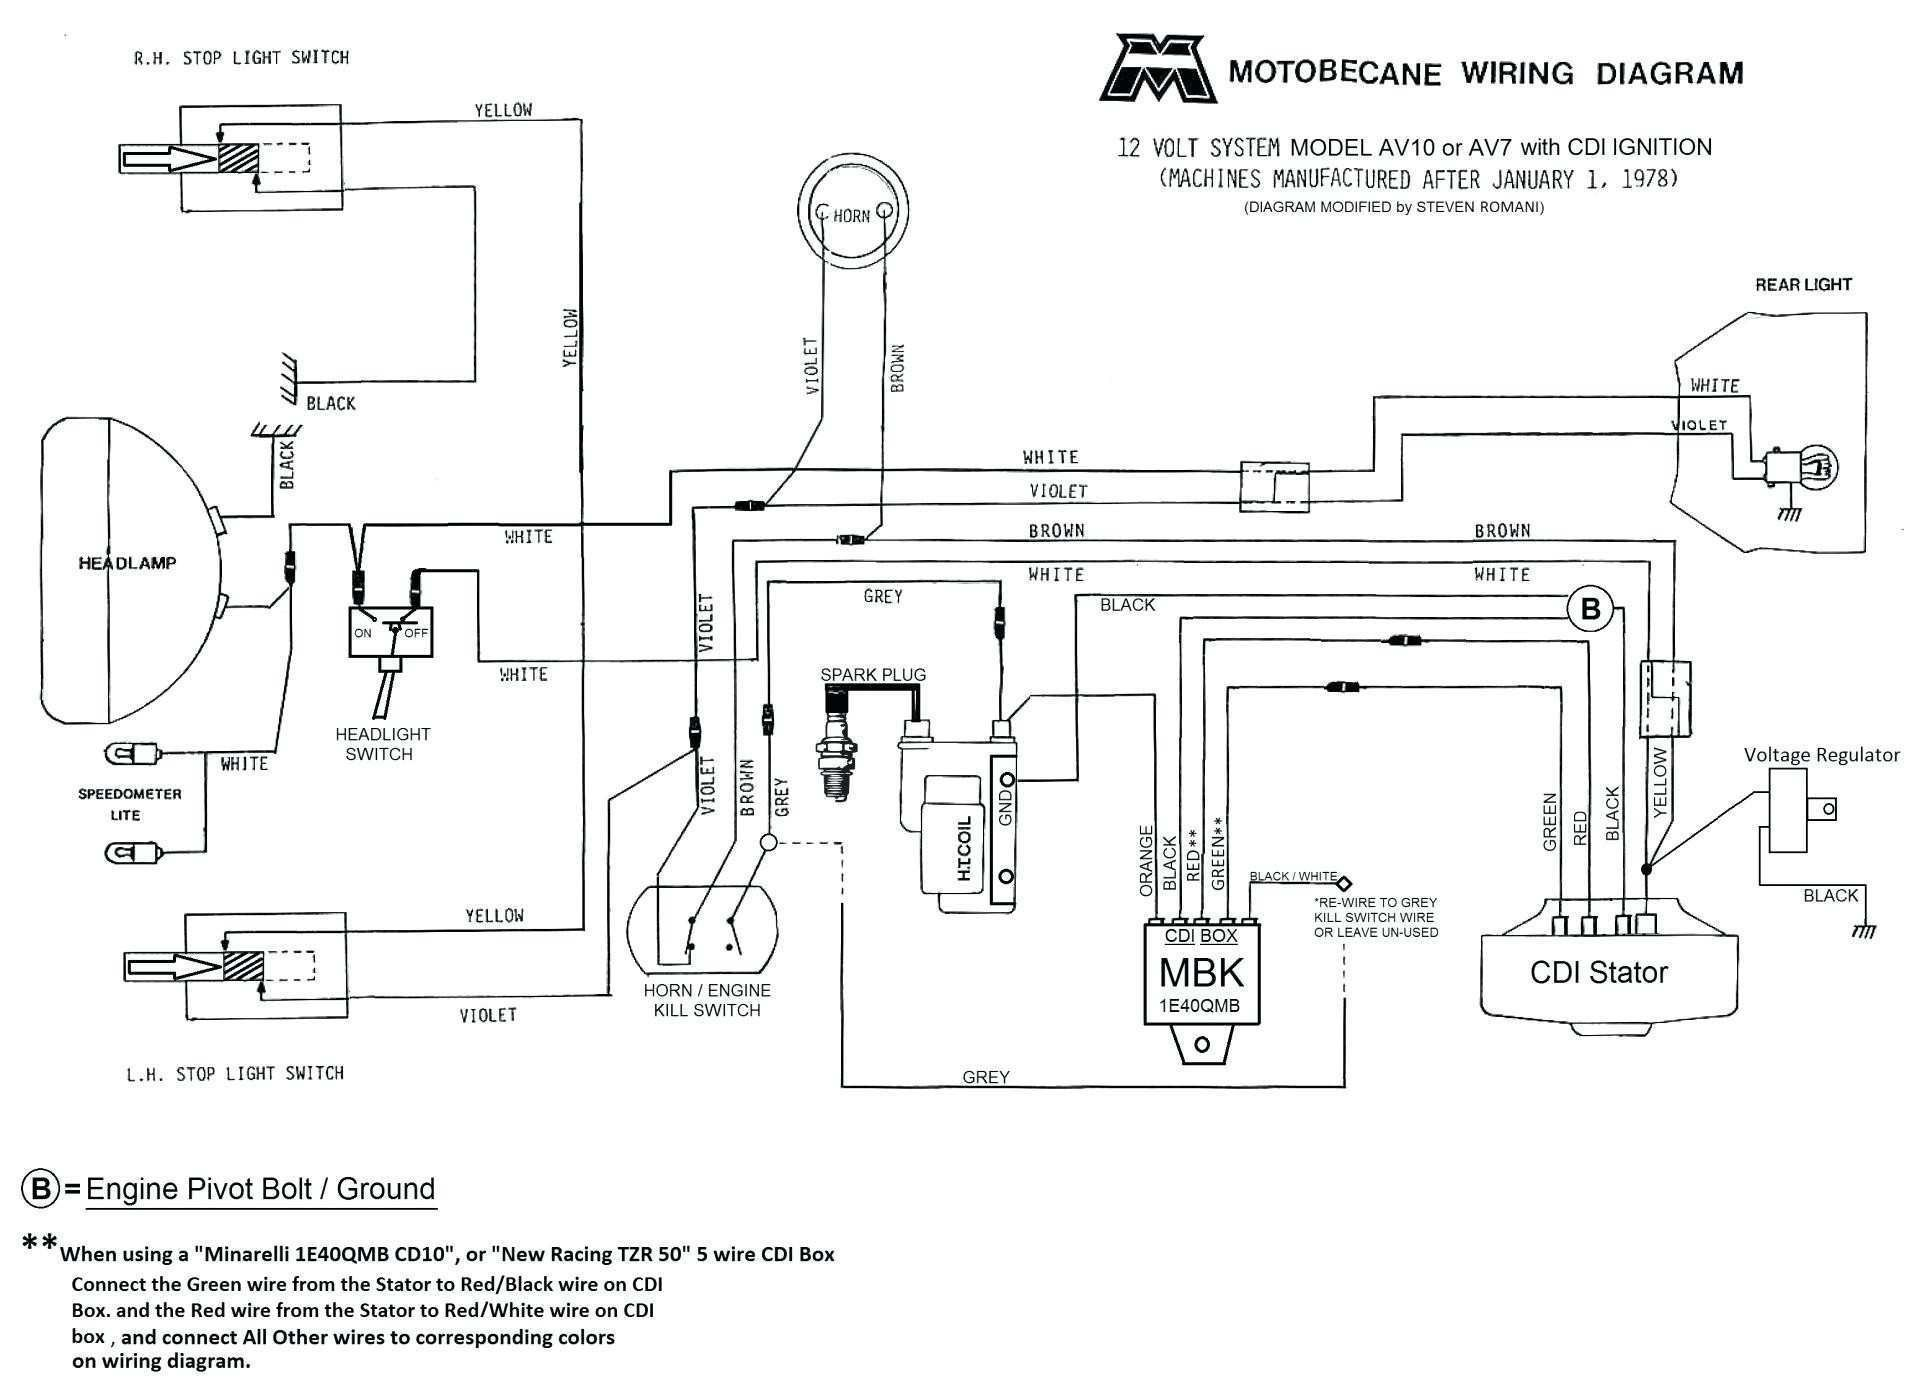 Yamaha G1 Gas Wiring Diagram - wiring diagram solid-why -  solid-why.labottegadisilvia.it | 1997 Yamaha Golf Cart Wiring Diagram |  | solid-why.labottegadisilvia.it